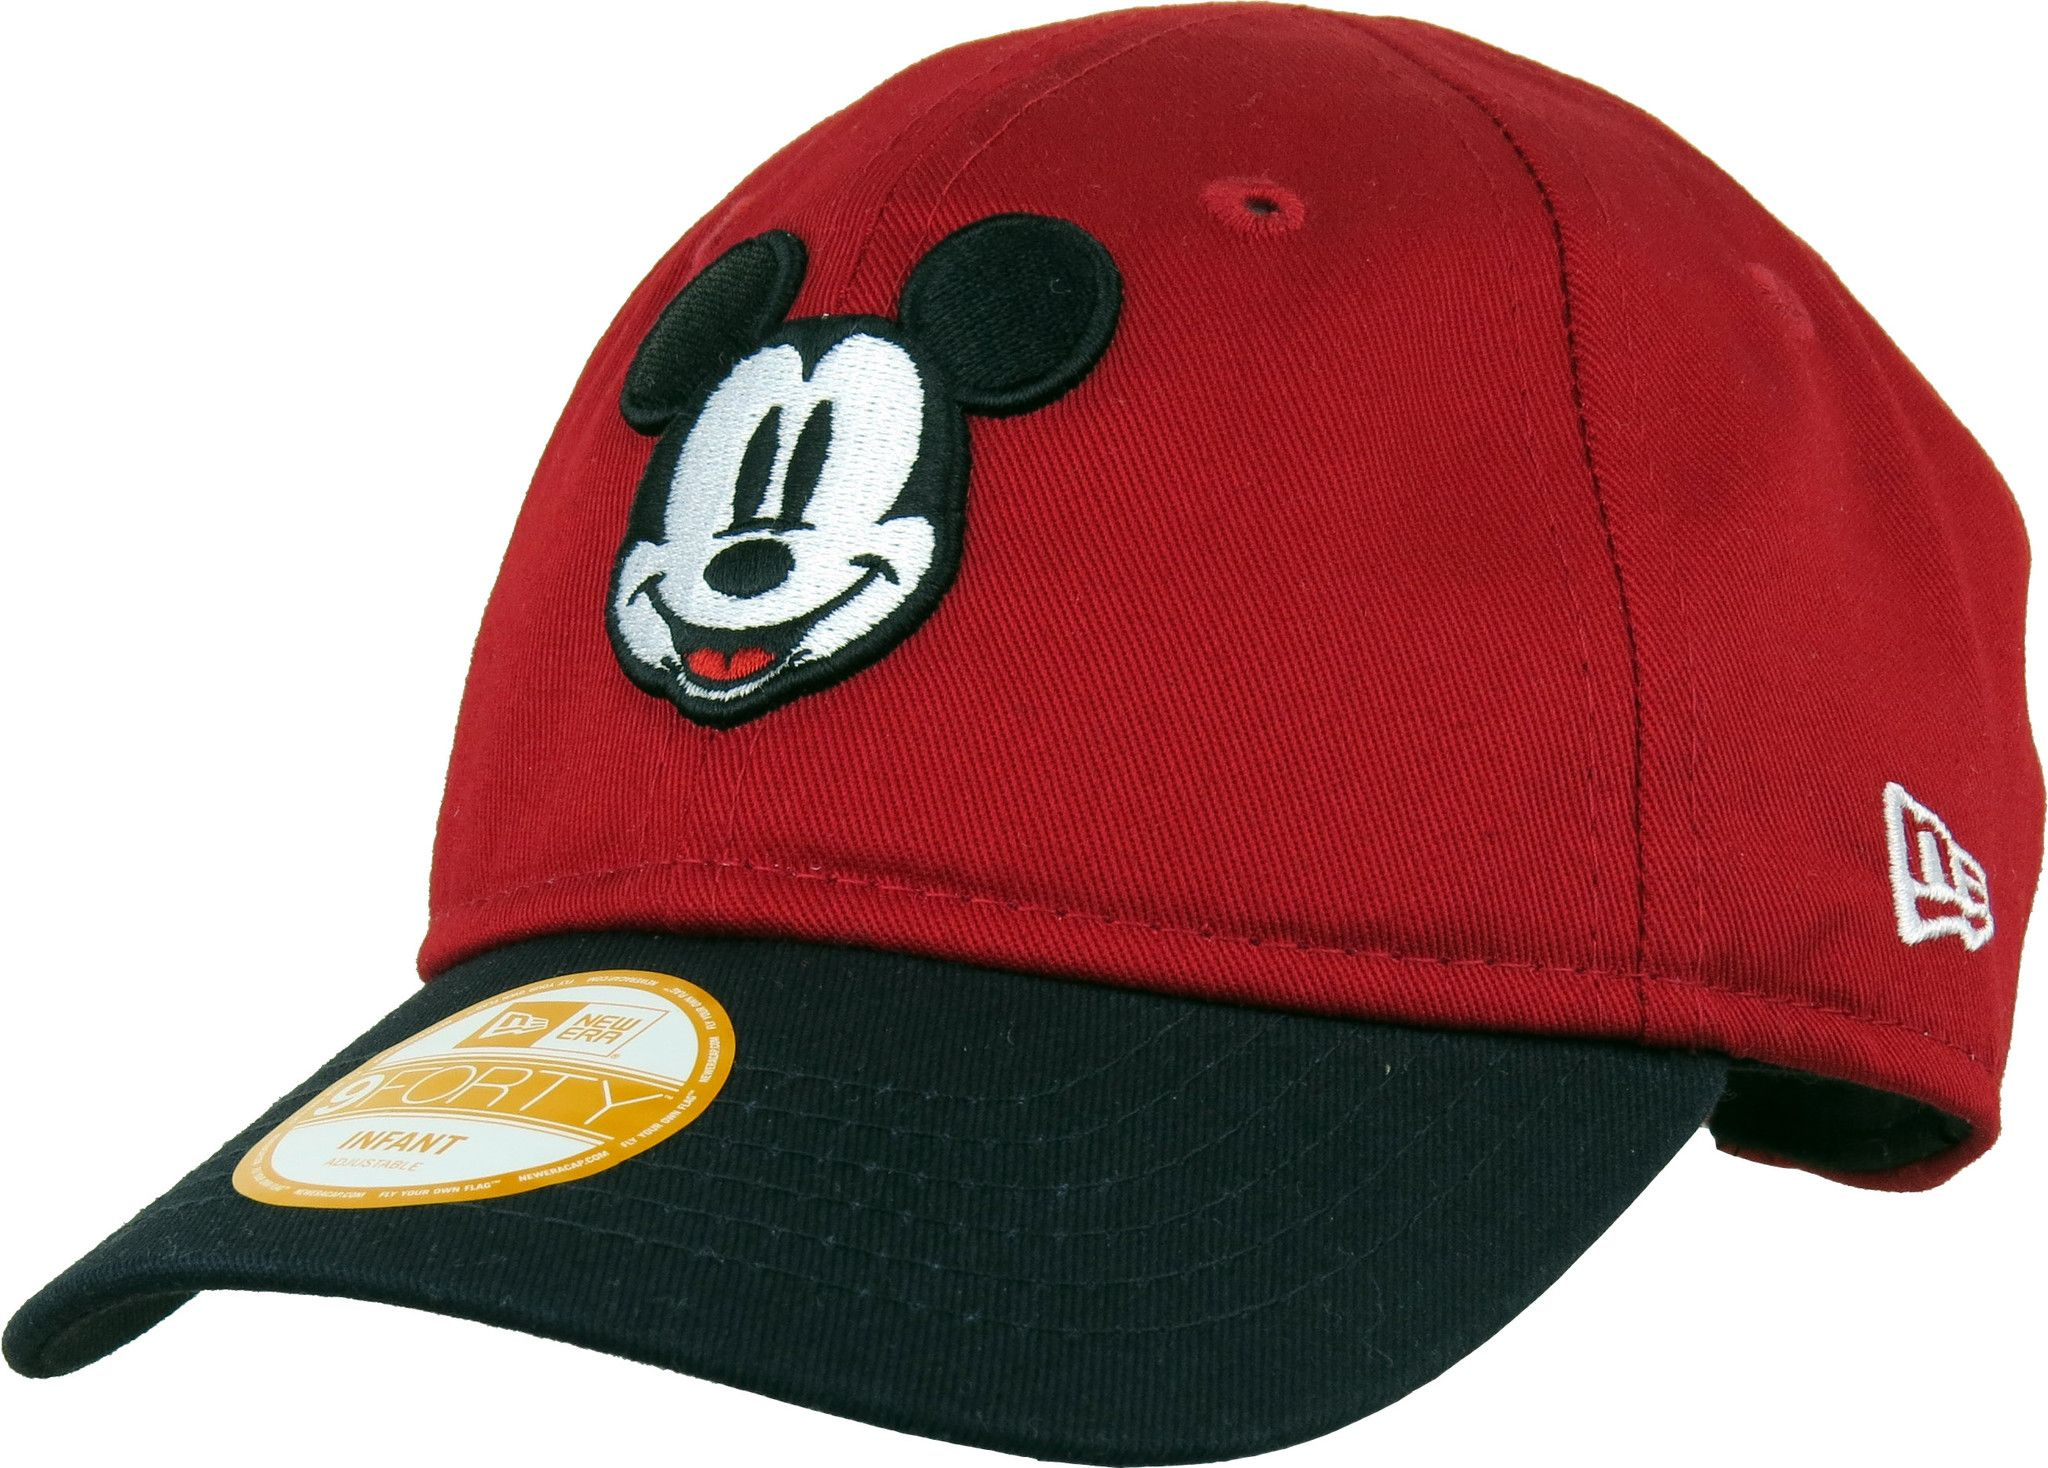 5c229c26d0d Mickey Mouse New Era 940 My 1st Stretch Fit Infants Red Cap (0-2 years) -  pumpheadgear